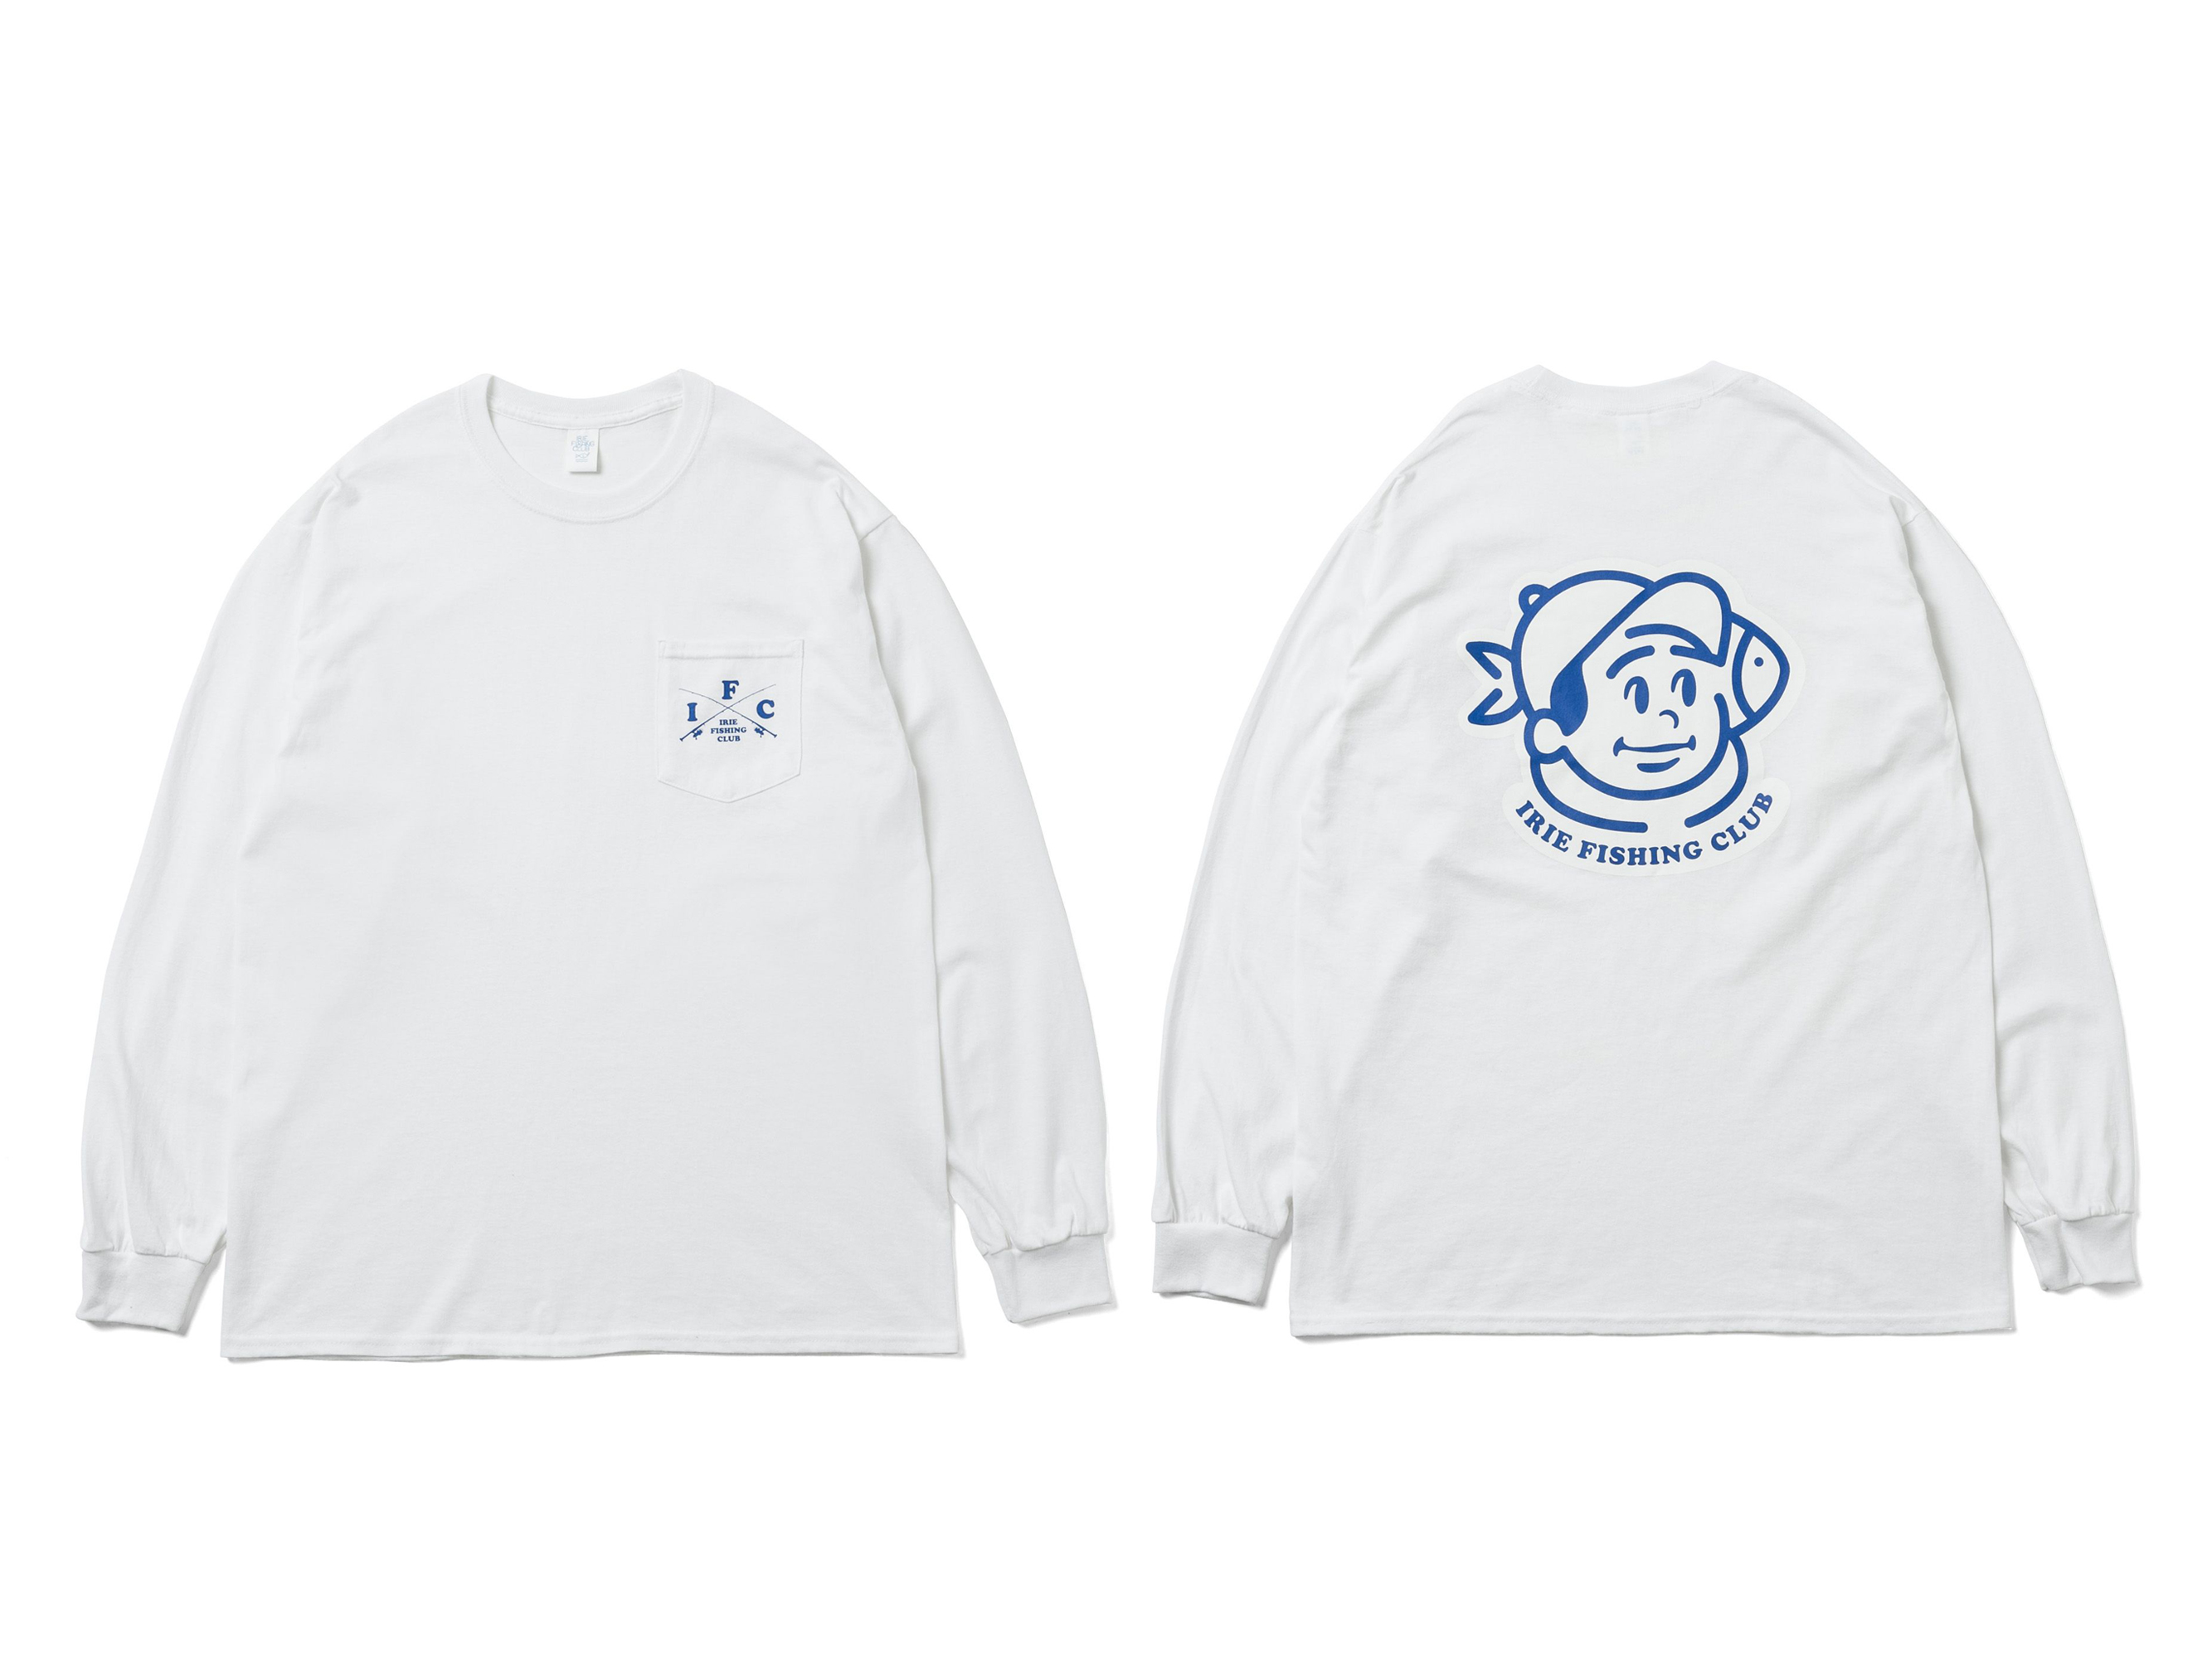 I.F.C NEW FISHING BOY POCKET L/S TEE -IRIE FISHING CLUB-